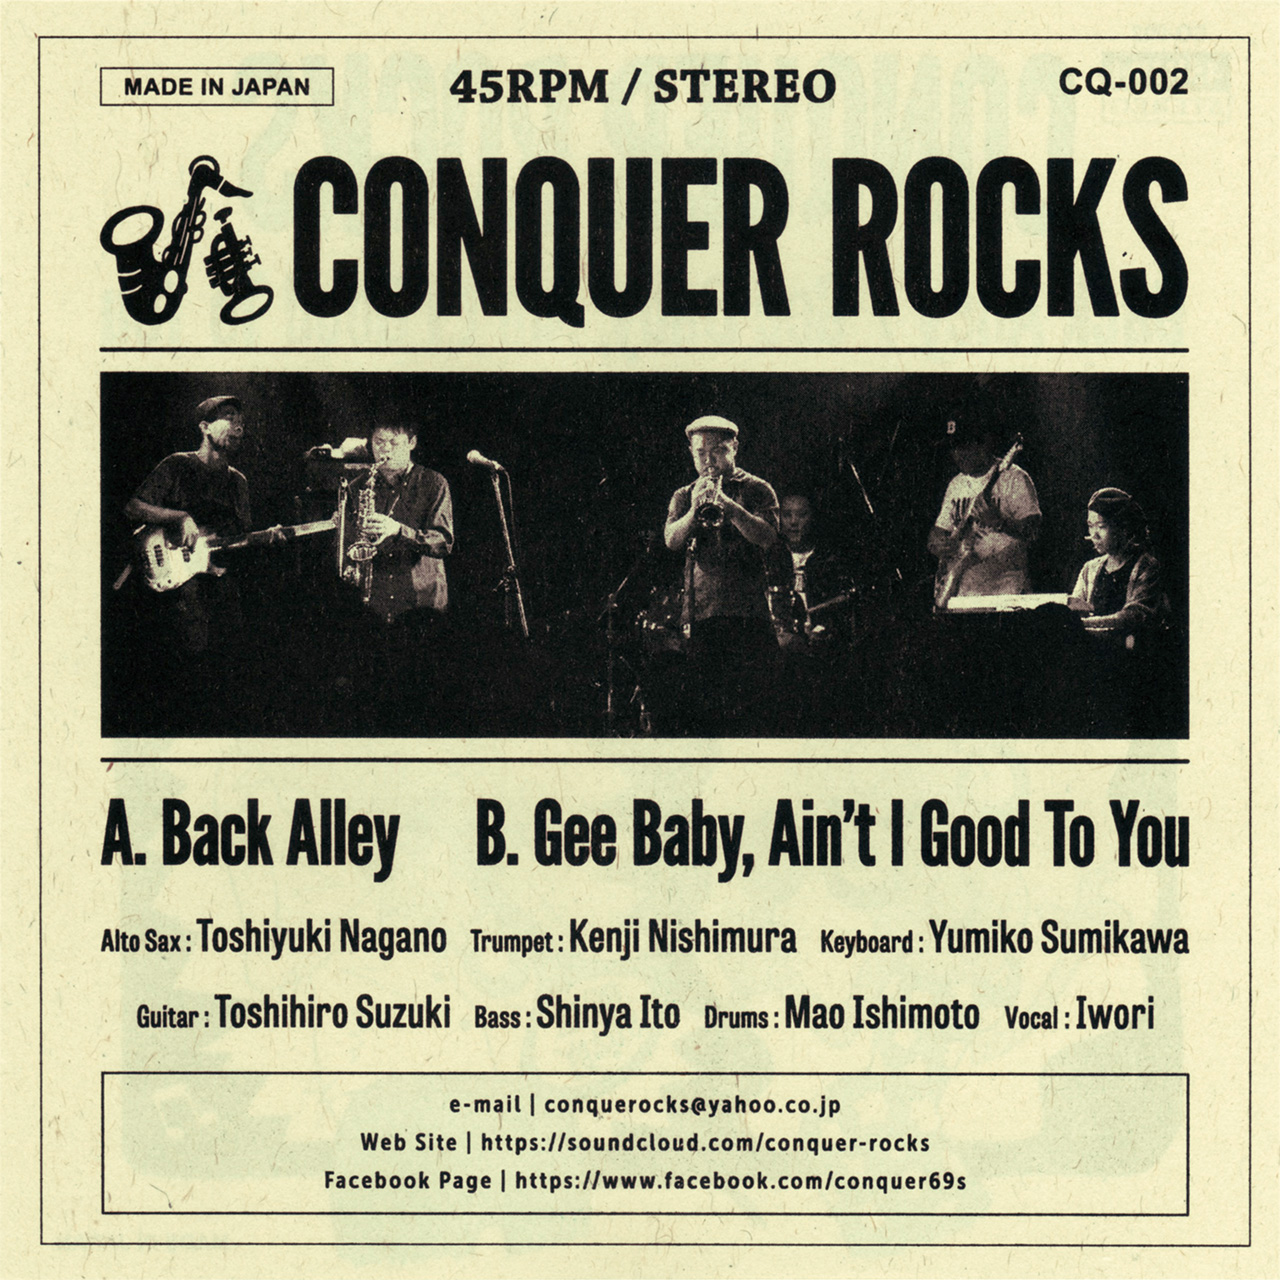 CONQUER ROCKS [ Back Alley / Gee Baby, Ain't I Good To You feat IWORI] (CQ002)